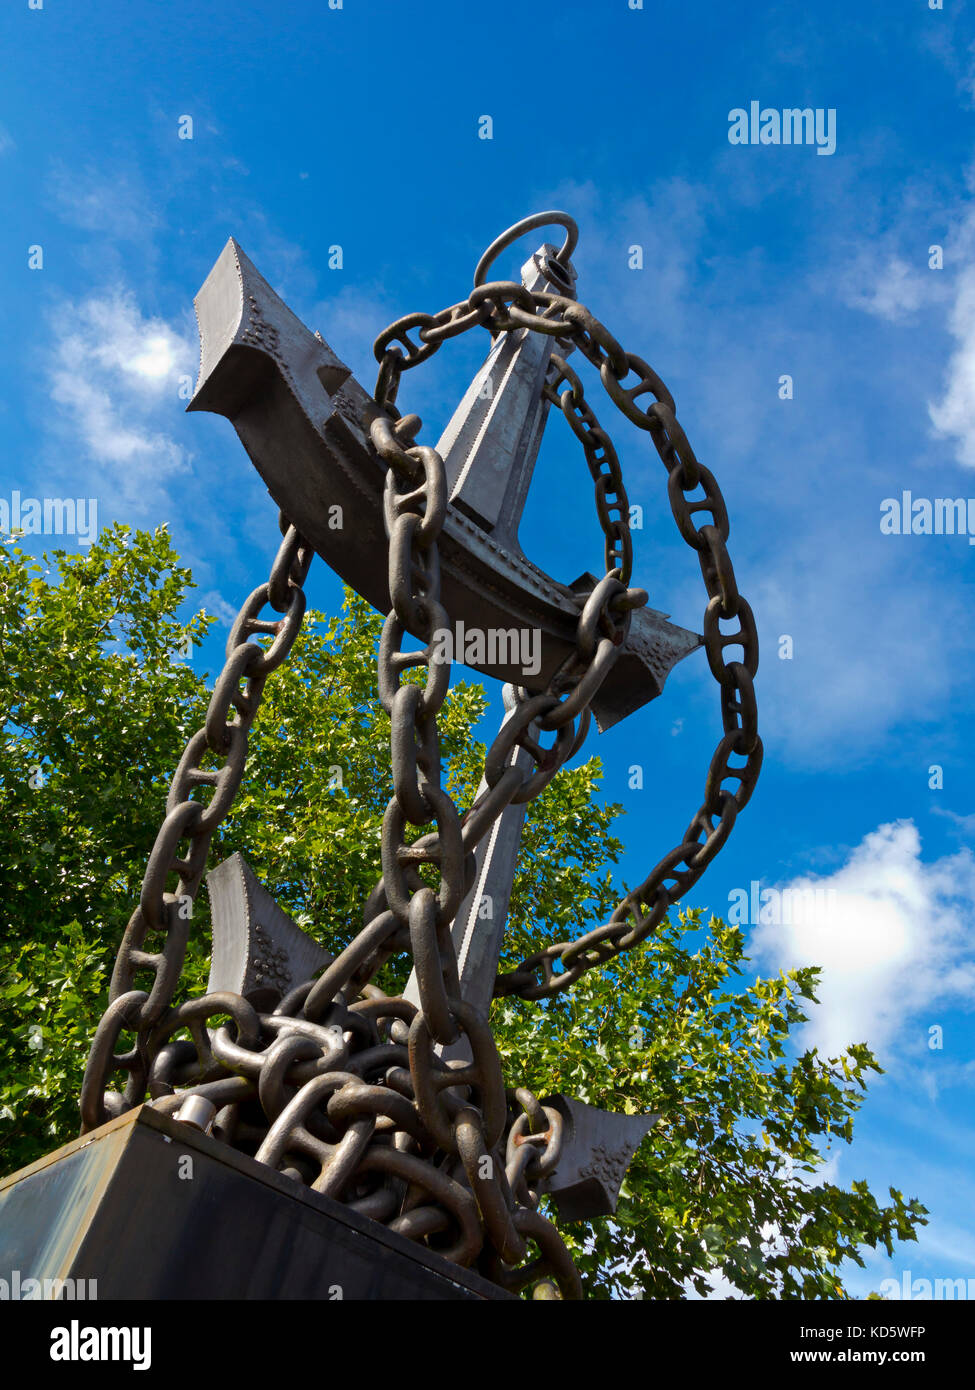 Colin Grazier Memorial Sculpture by Walenty Pytel in Tamworth Staffordshire to commemorate Second World War Hero - Stock Image